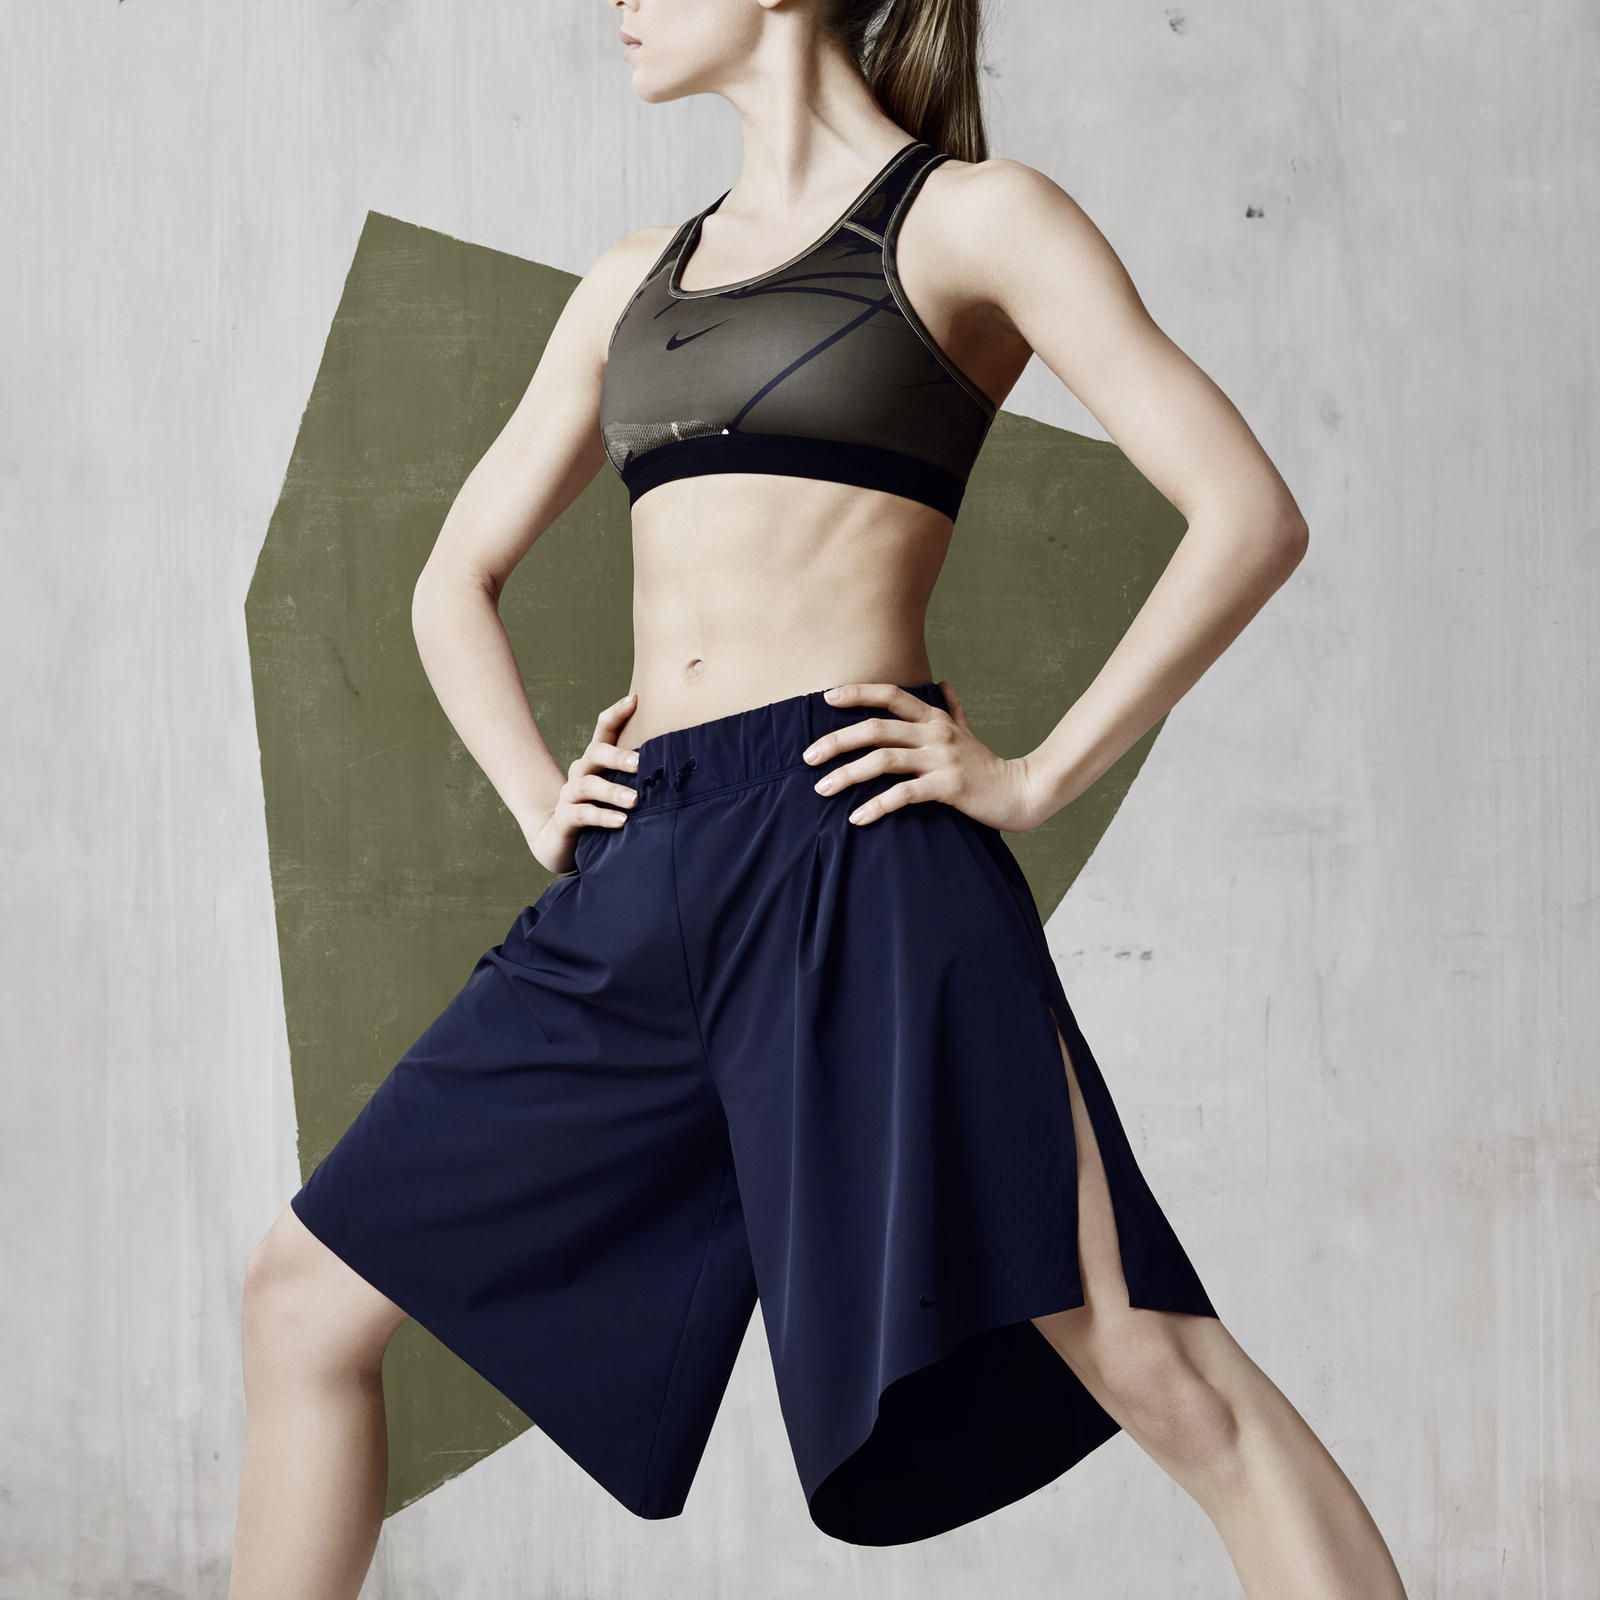 Nike News - NikeLab presents Johanna Schneider Women's Training Collection:  Modularity for the Body in